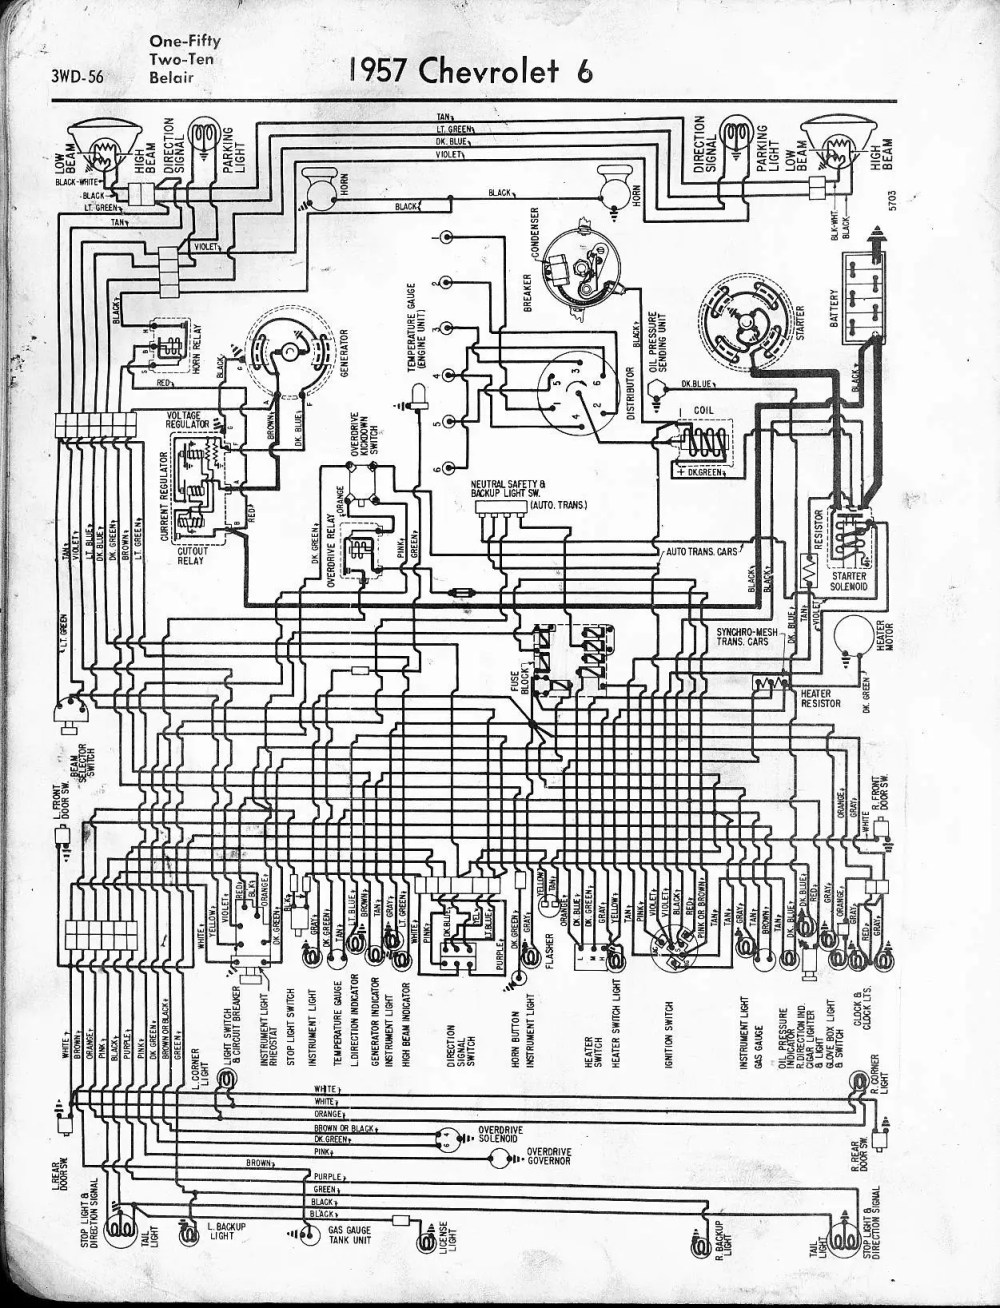 medium resolution of 1956 chevrolet bel air wiring diagram data diagram schematic bel air as well 1956 chevy colors on 1955 chevy truck wiring harness